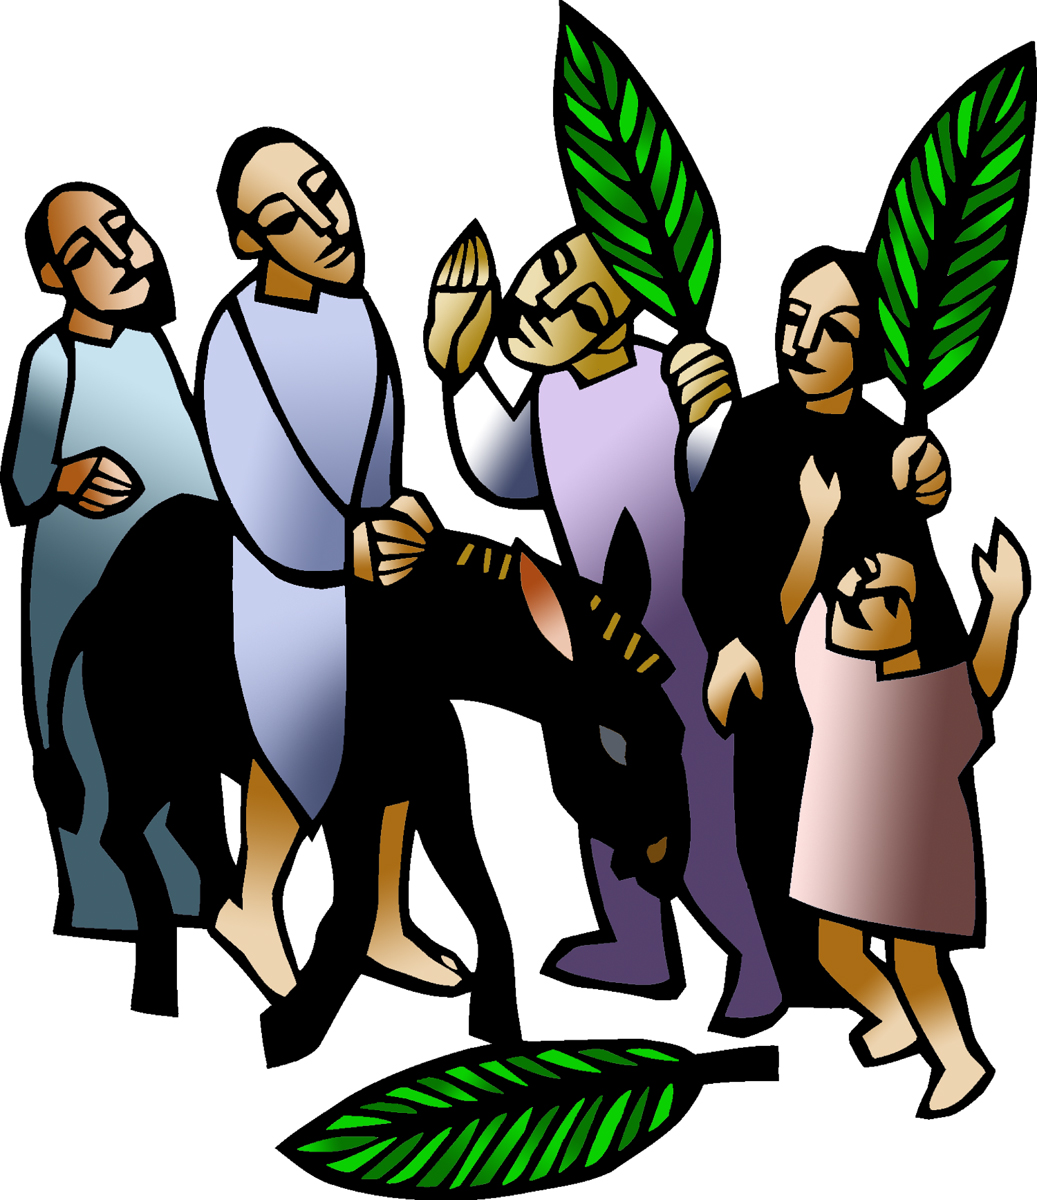 palm sunday clip art images clipart panda free clipart images rh clipartpanda com Earth Day Clip Art free clipart images for palm sunday